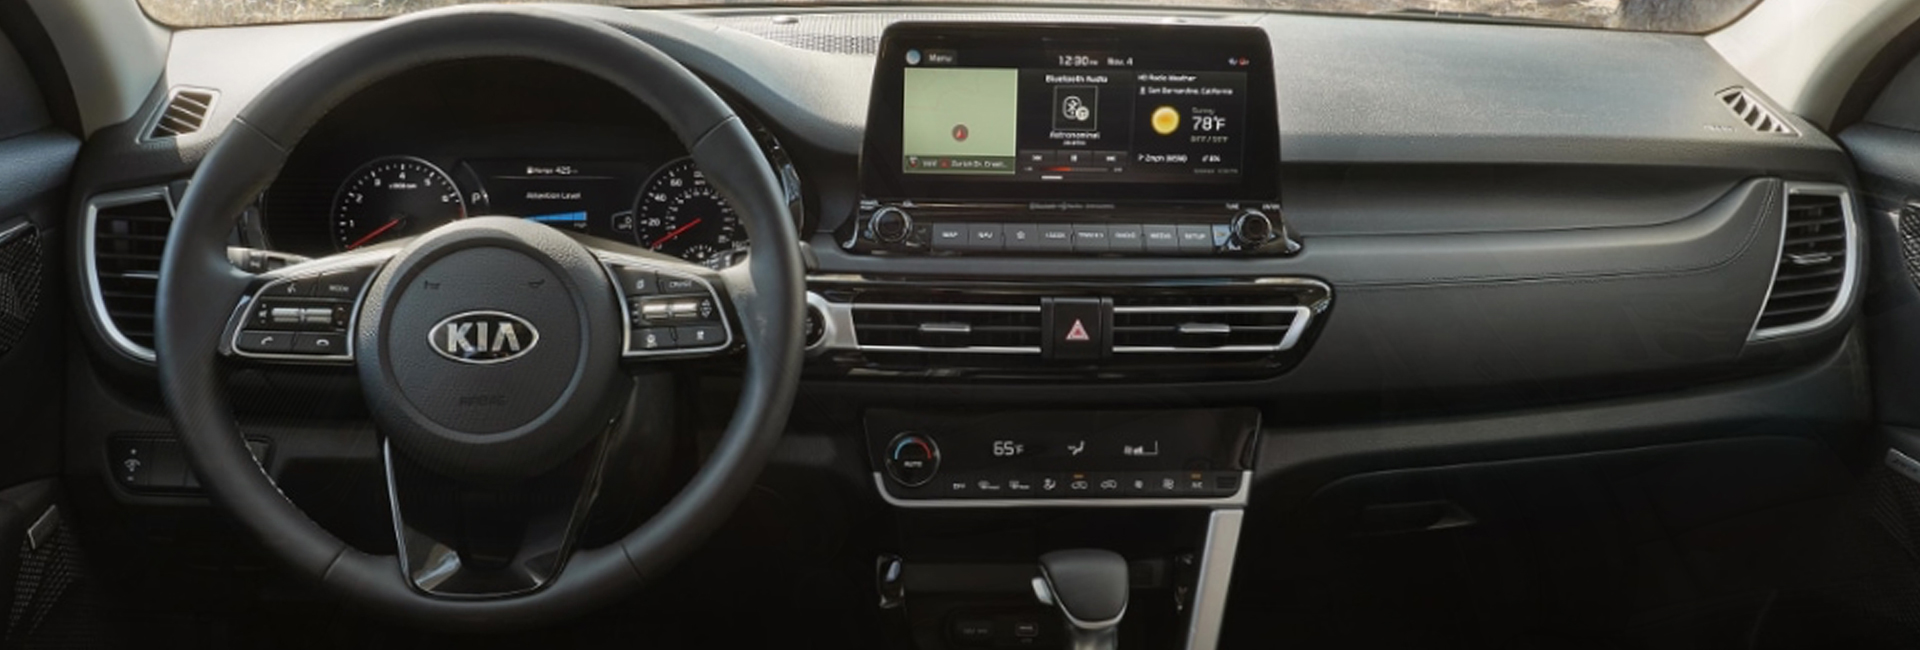 Close up view of the steering wheel and infotainment system in a Kia Seltos